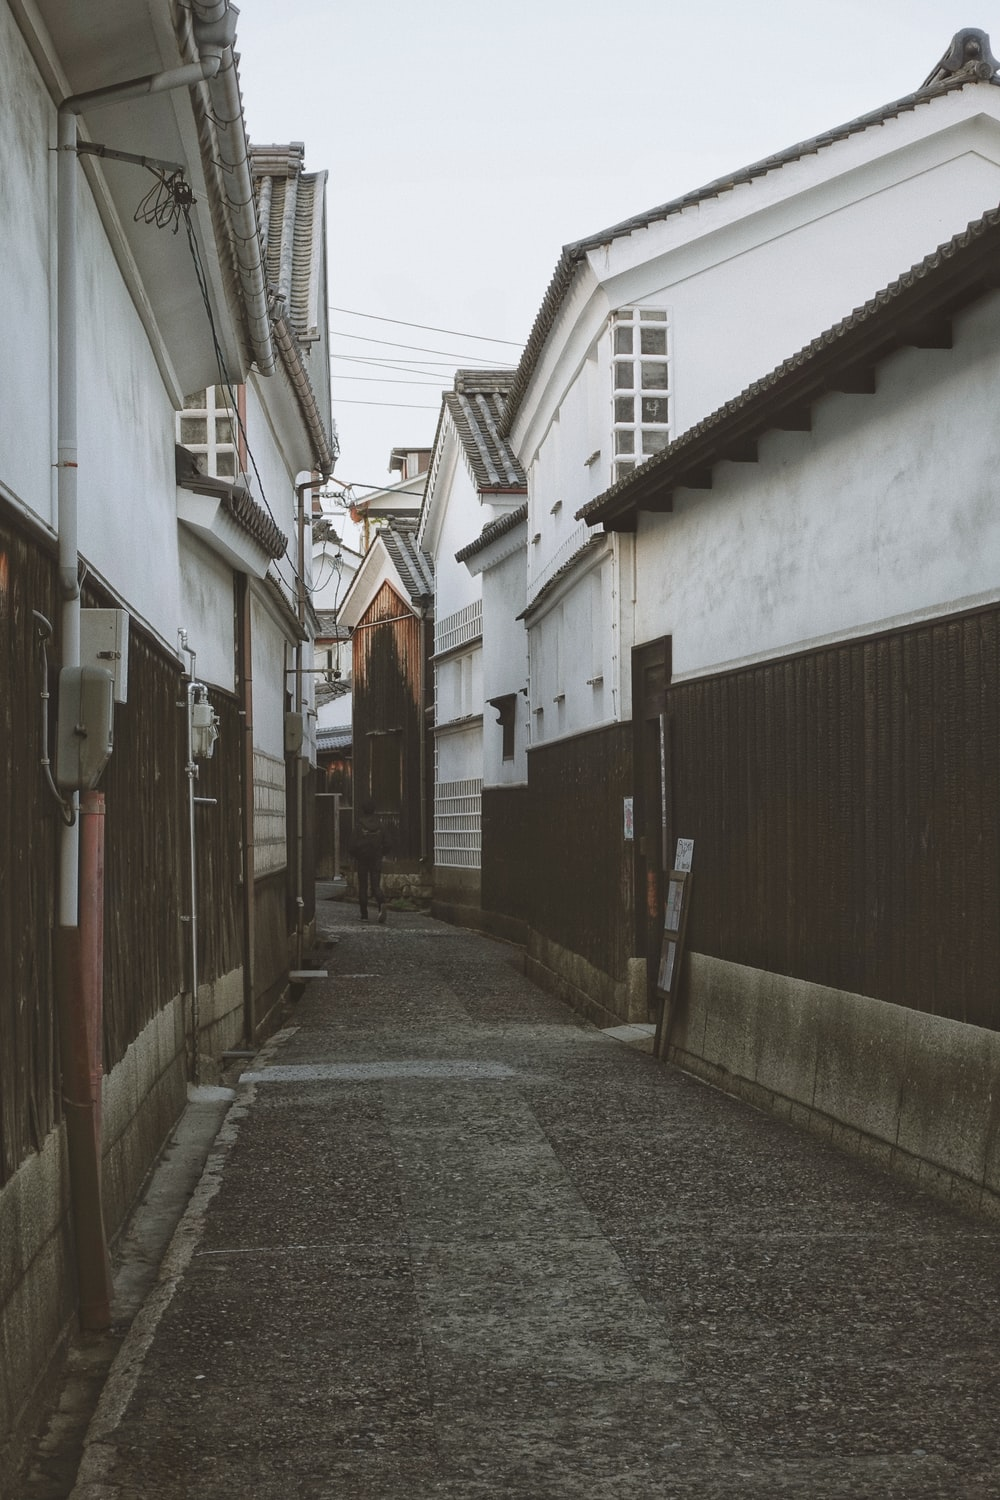 empty street between concrete houses during daytime